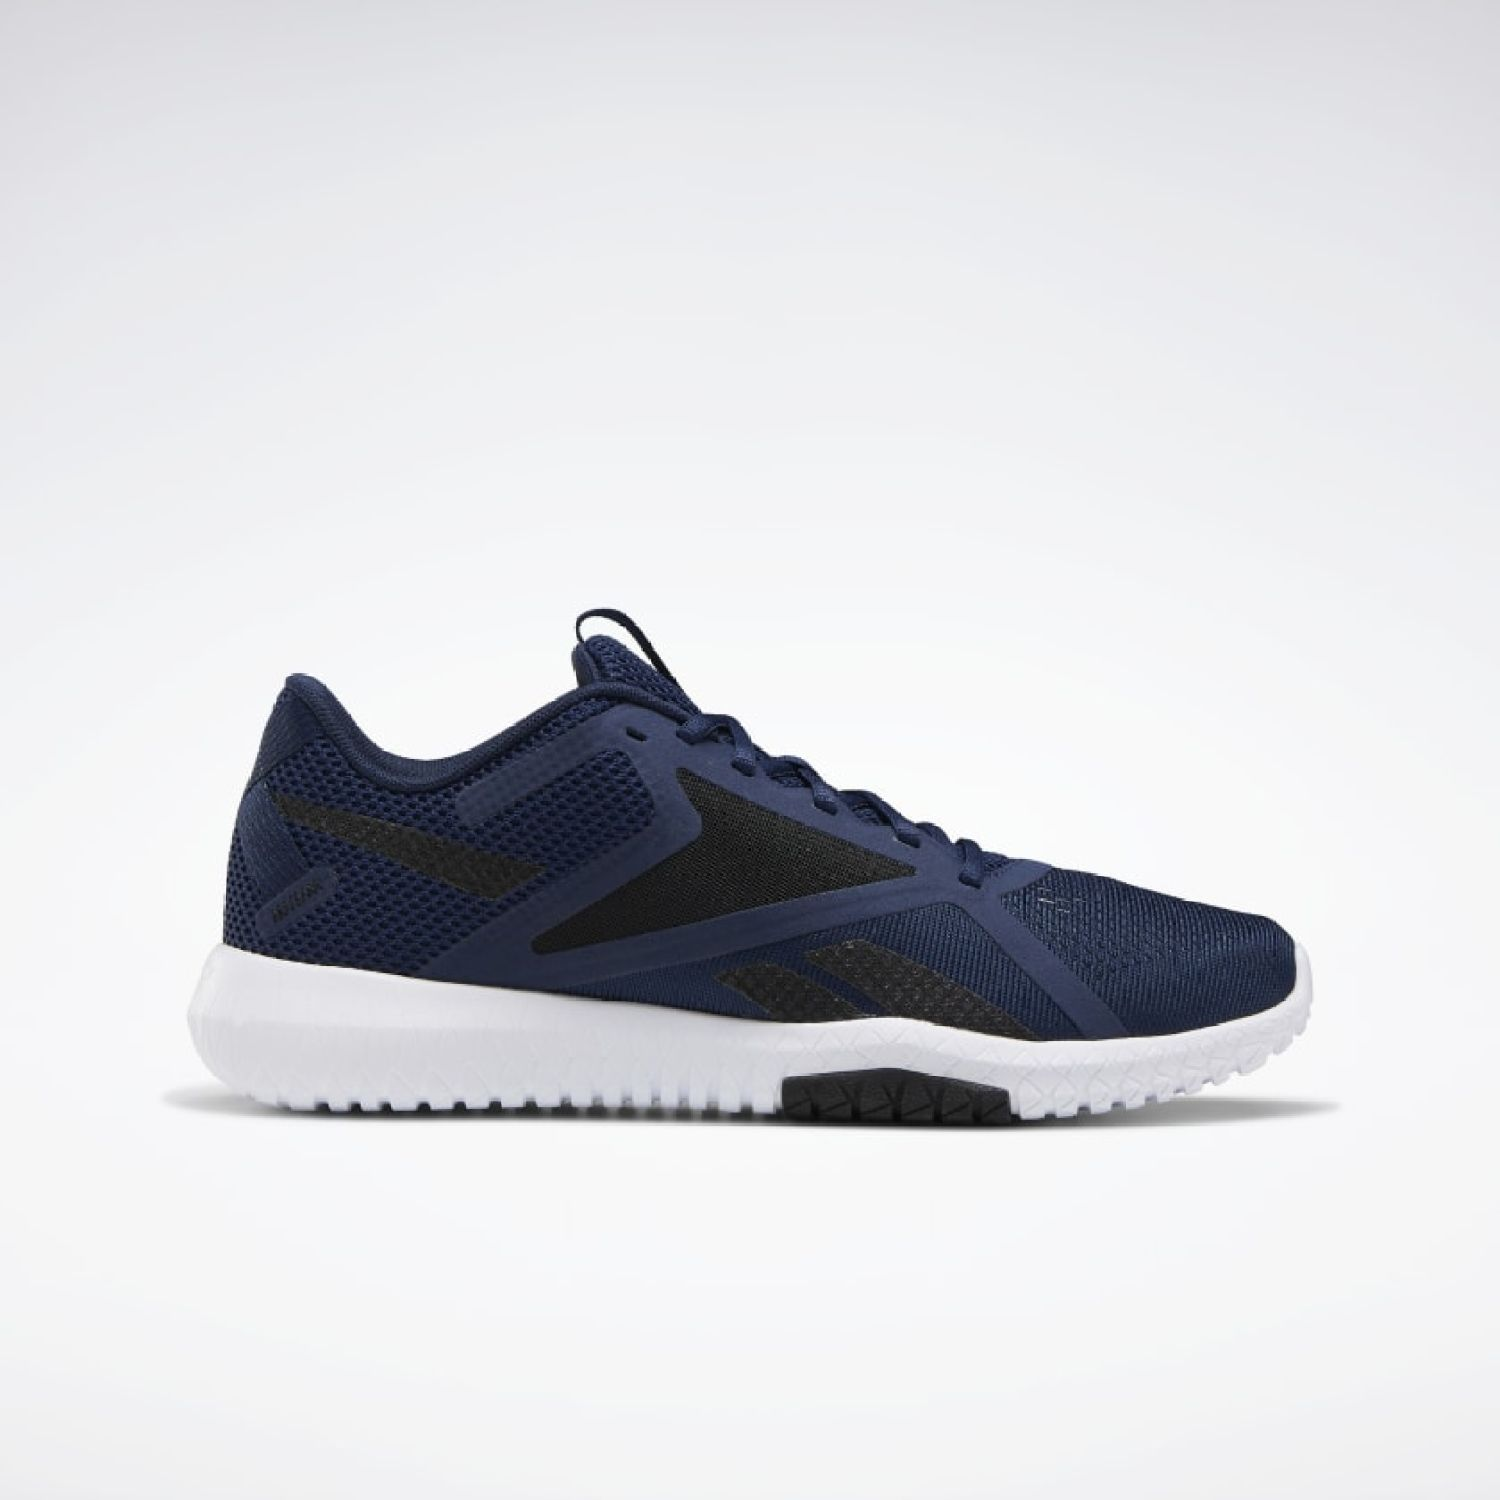 Reebok REEBOK FLEXAGON FORCE 2.0 Navy / Negro Hombres